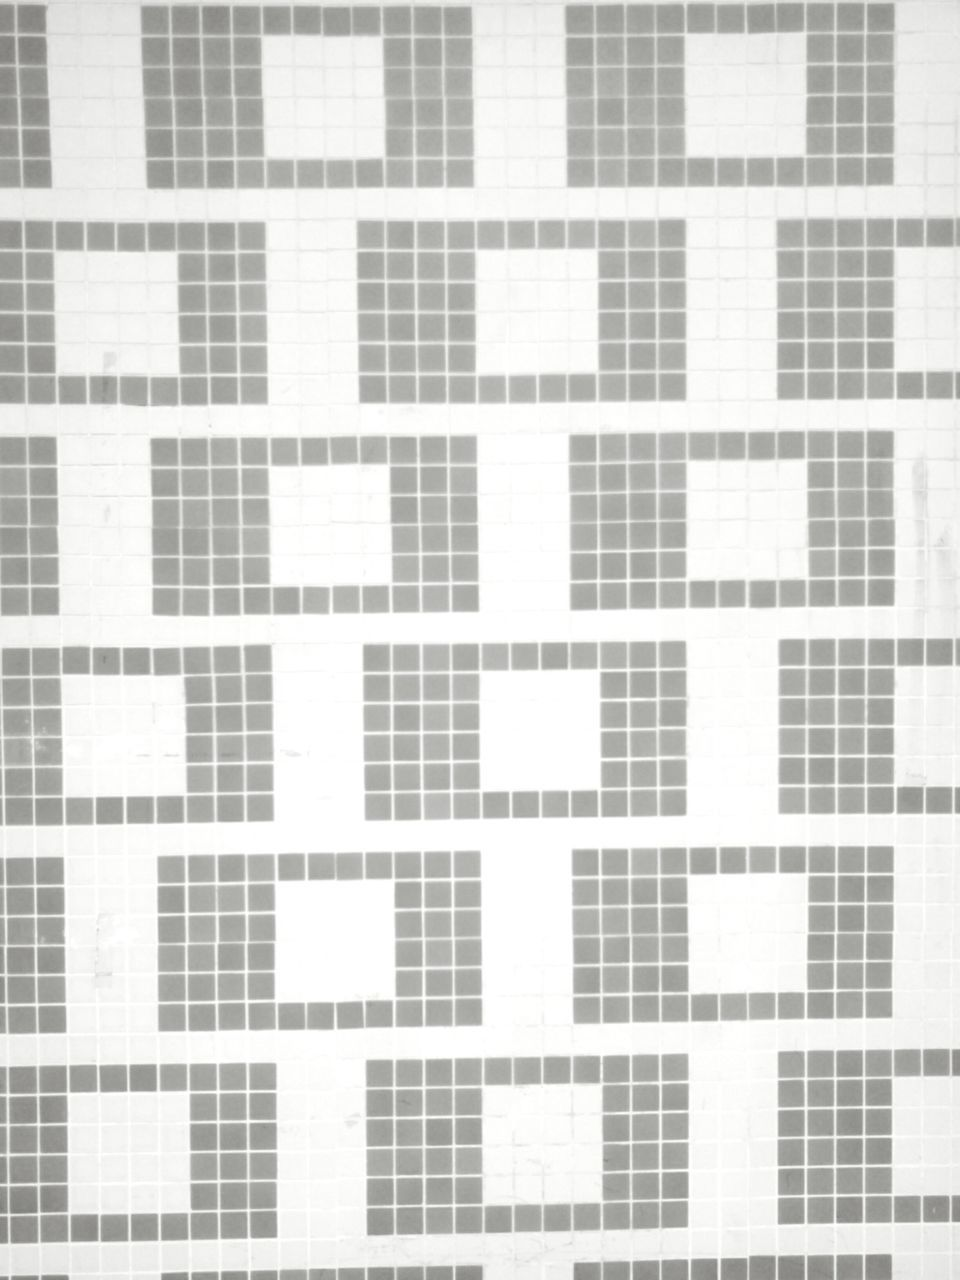 backgrounds, pattern, tile, abstract, full frame, architecture, window, checked pattern, textured, built structure, building exterior, paper, no people, modern, bathroom, close-up, indoors, day, color swatch